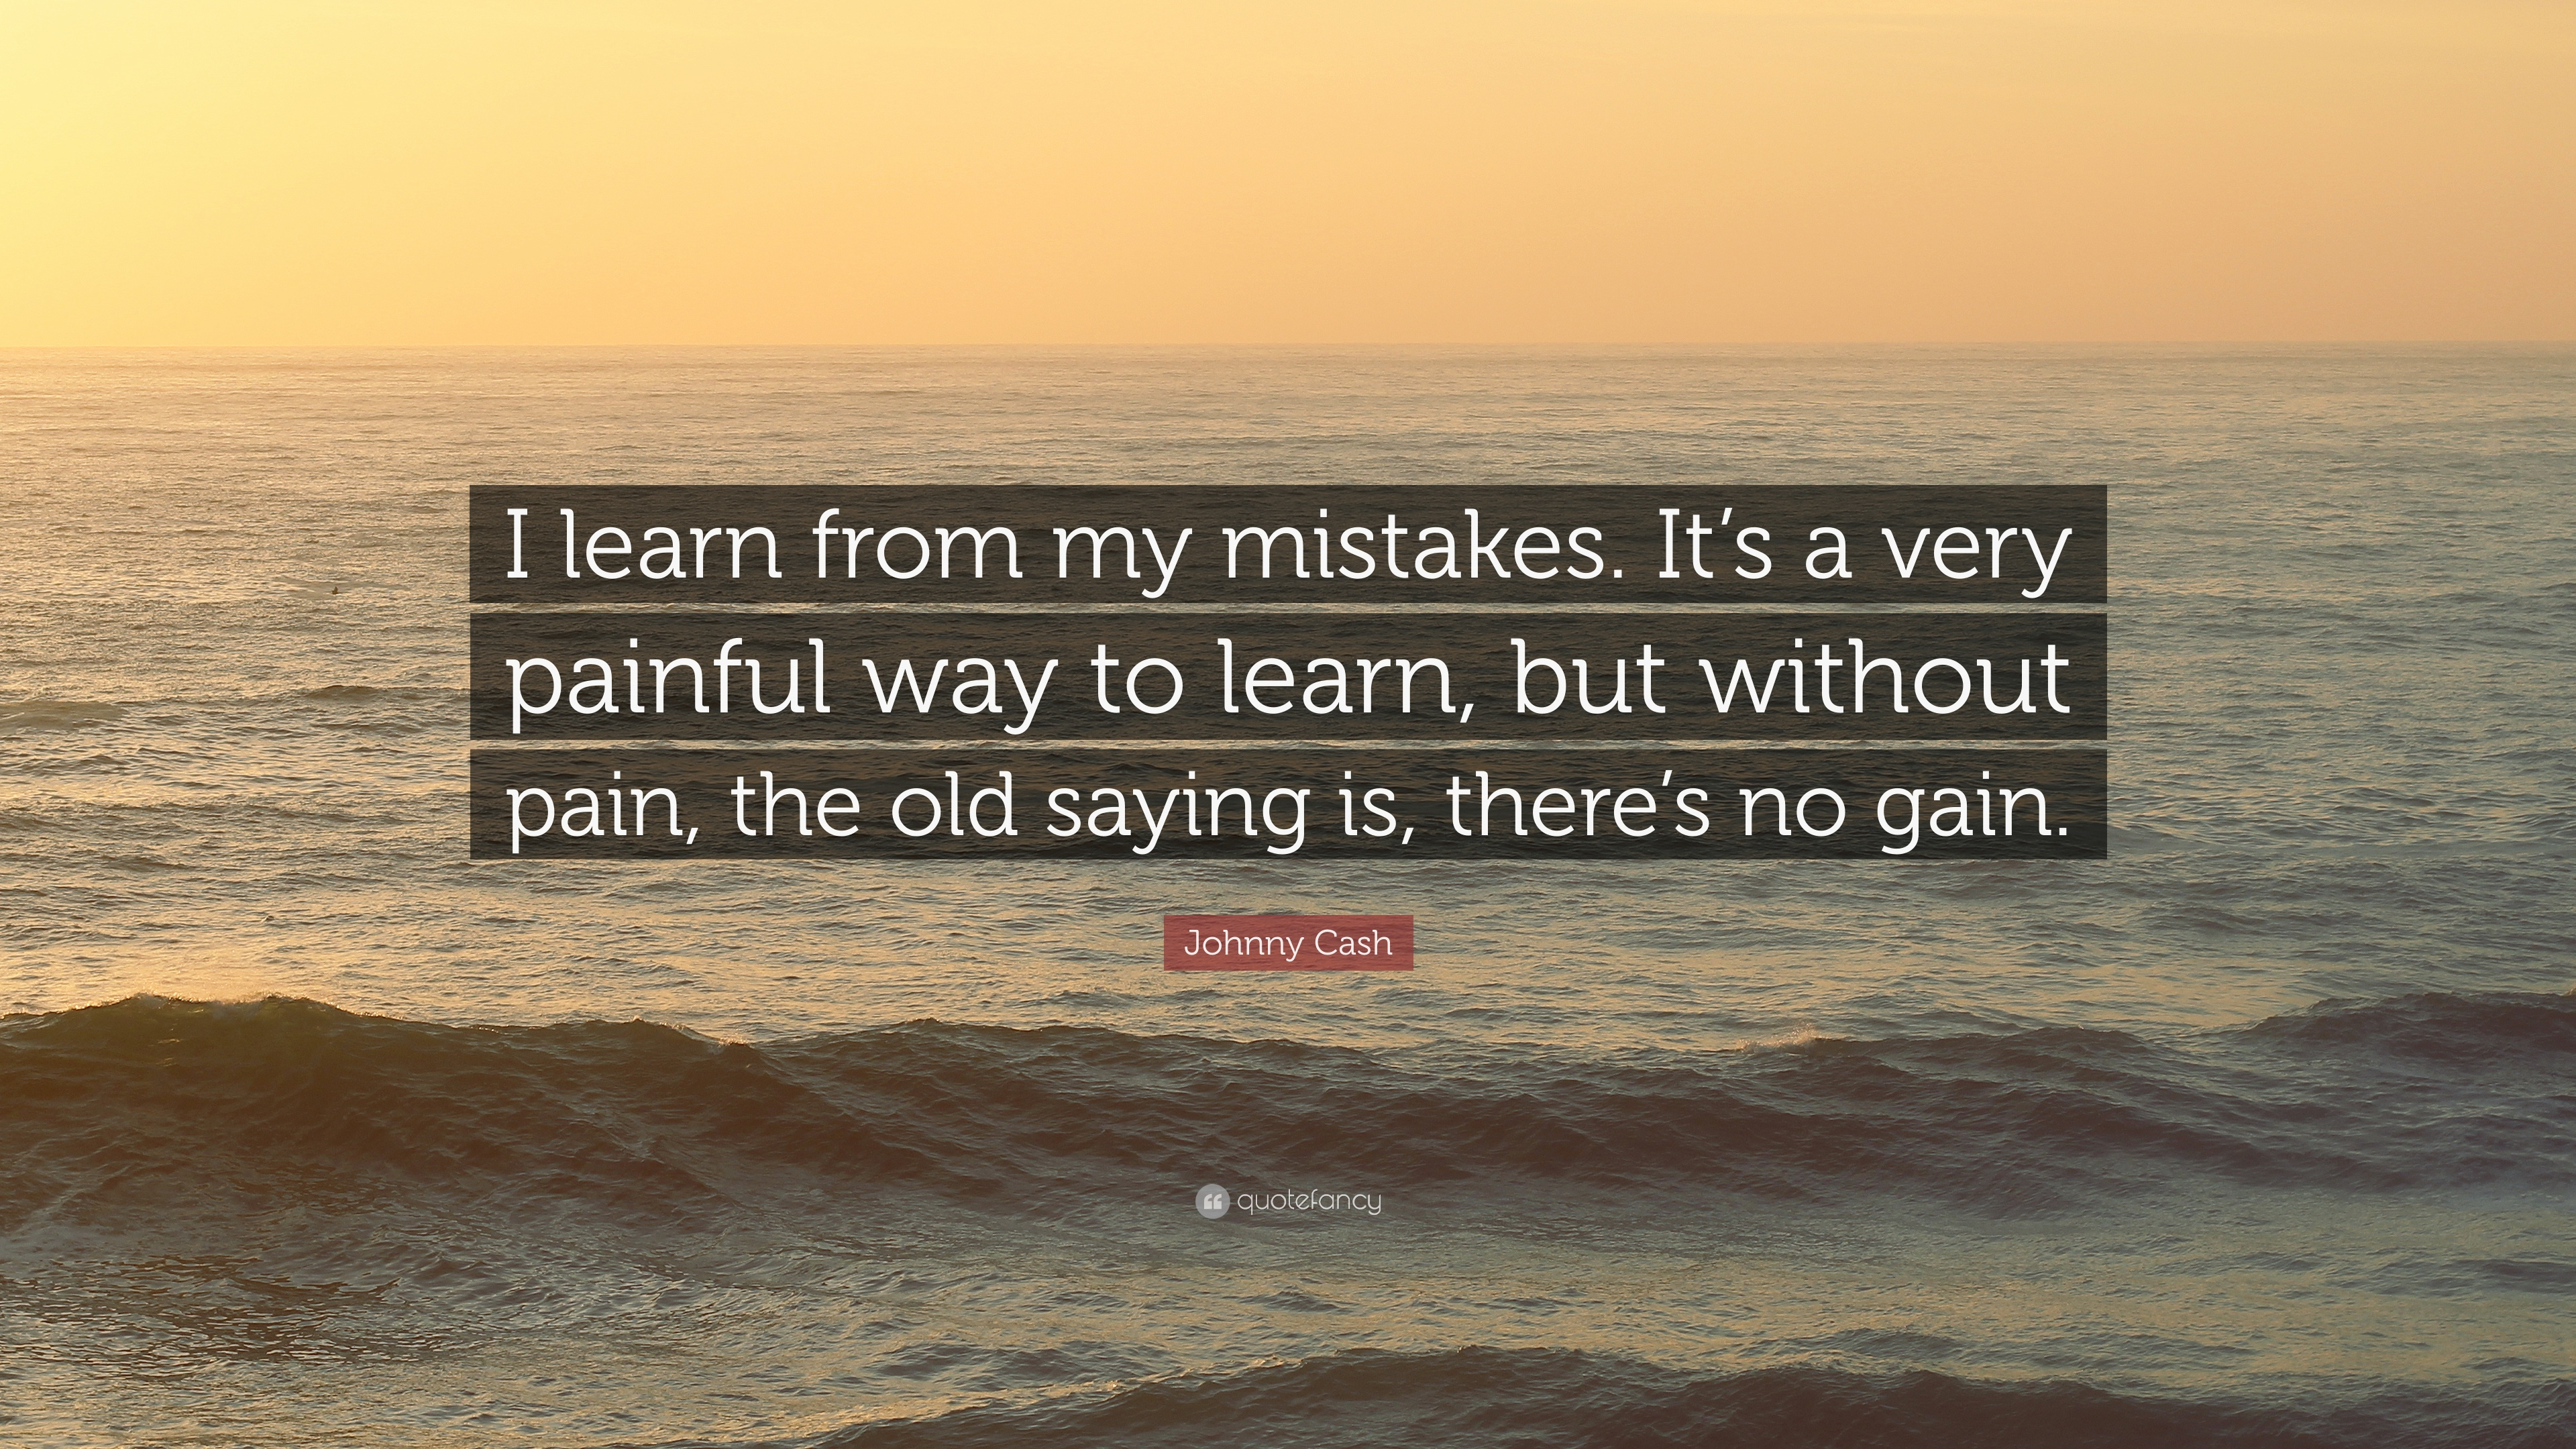 Lovely Johnny Cash Quote: U201cI Learn From My Mistakes. Itu0027s A Very Painful Way